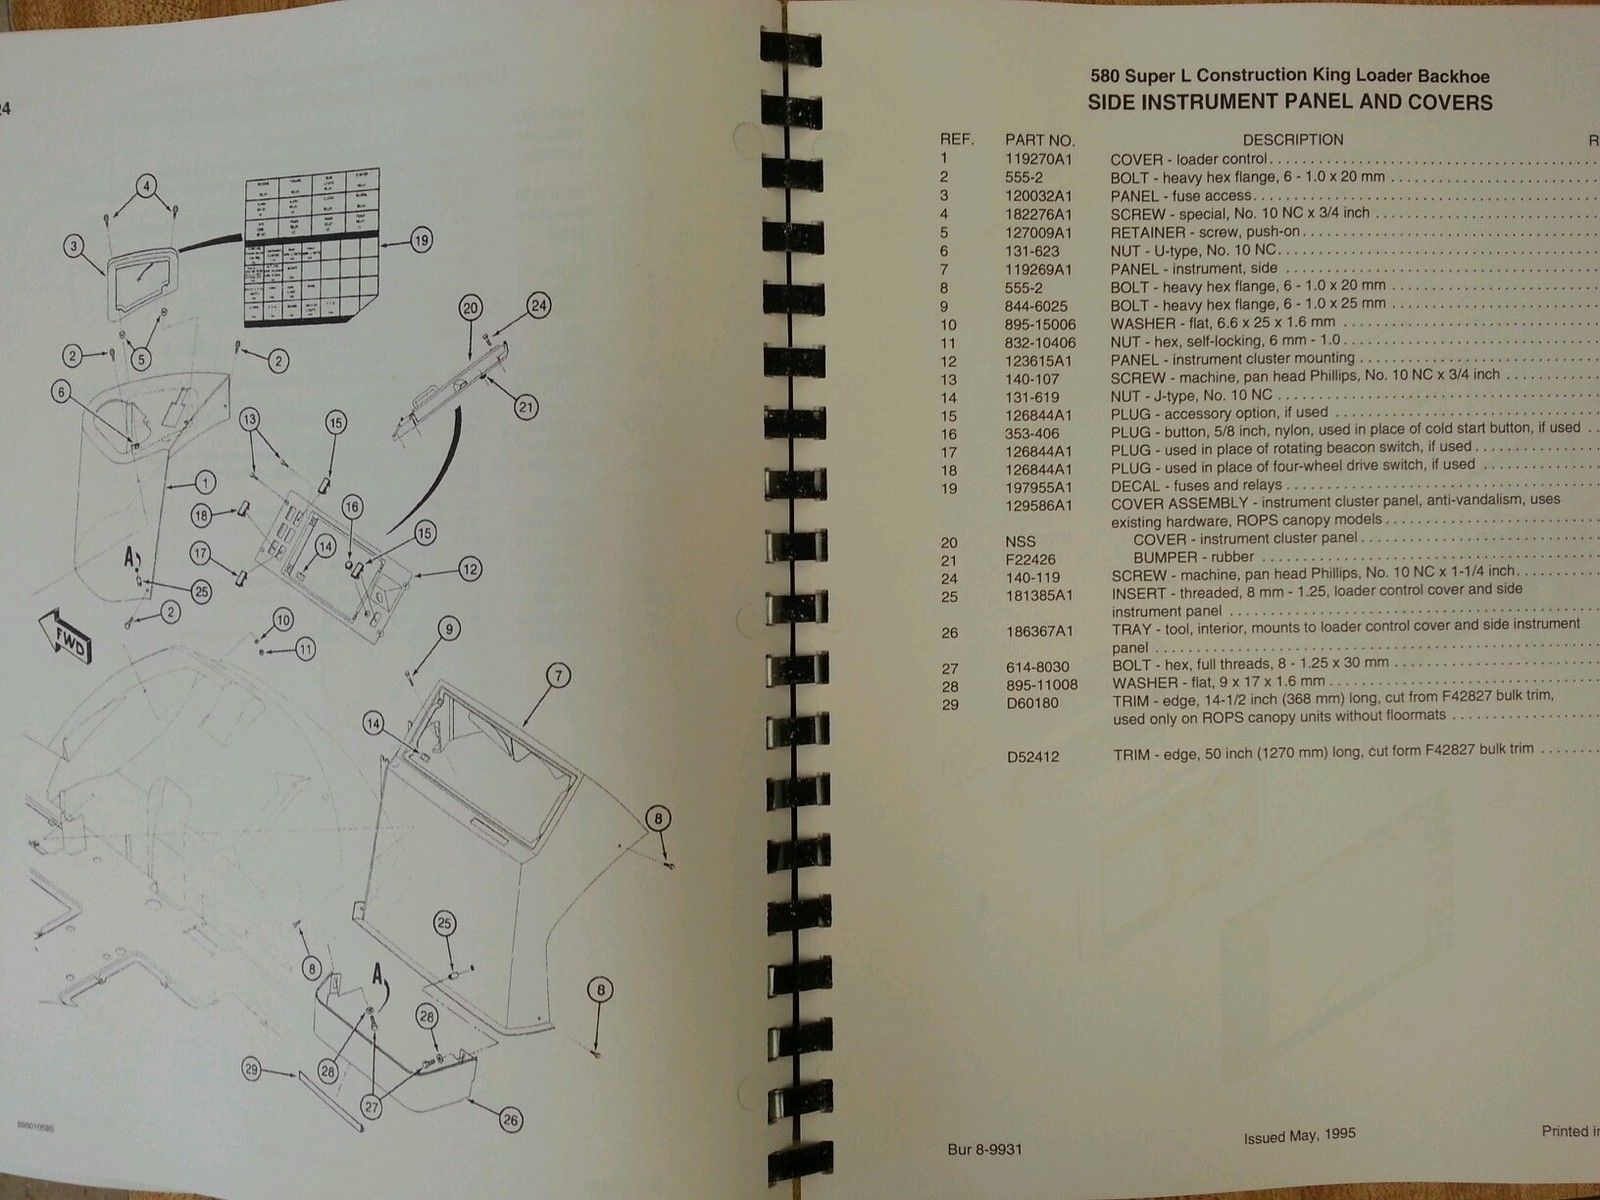 case 580d construction king wiring diagram 42 wiring diagram backhoe loader case 580 wiring diagram wiring diagram shrutiradio sd423452467 case 580 super l 580sl loader backhoe parts manual book 8 9931 4 case 580